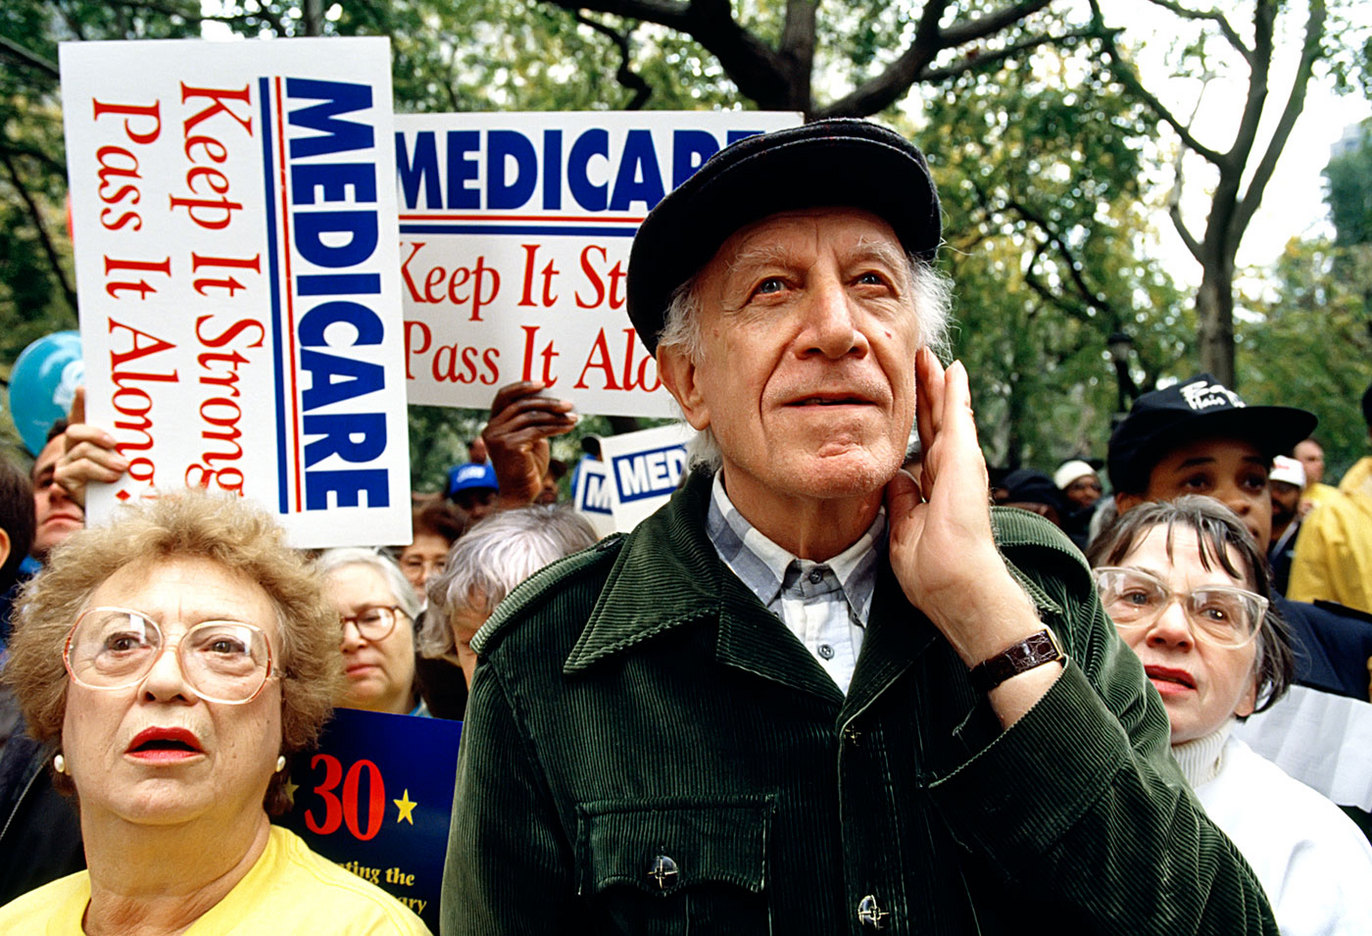 Seniors at a Keep Medicare Strong march in Washington D.C. : HEALTHCARE & MEDICAL : Viviane Moos |  Documentary Photographer